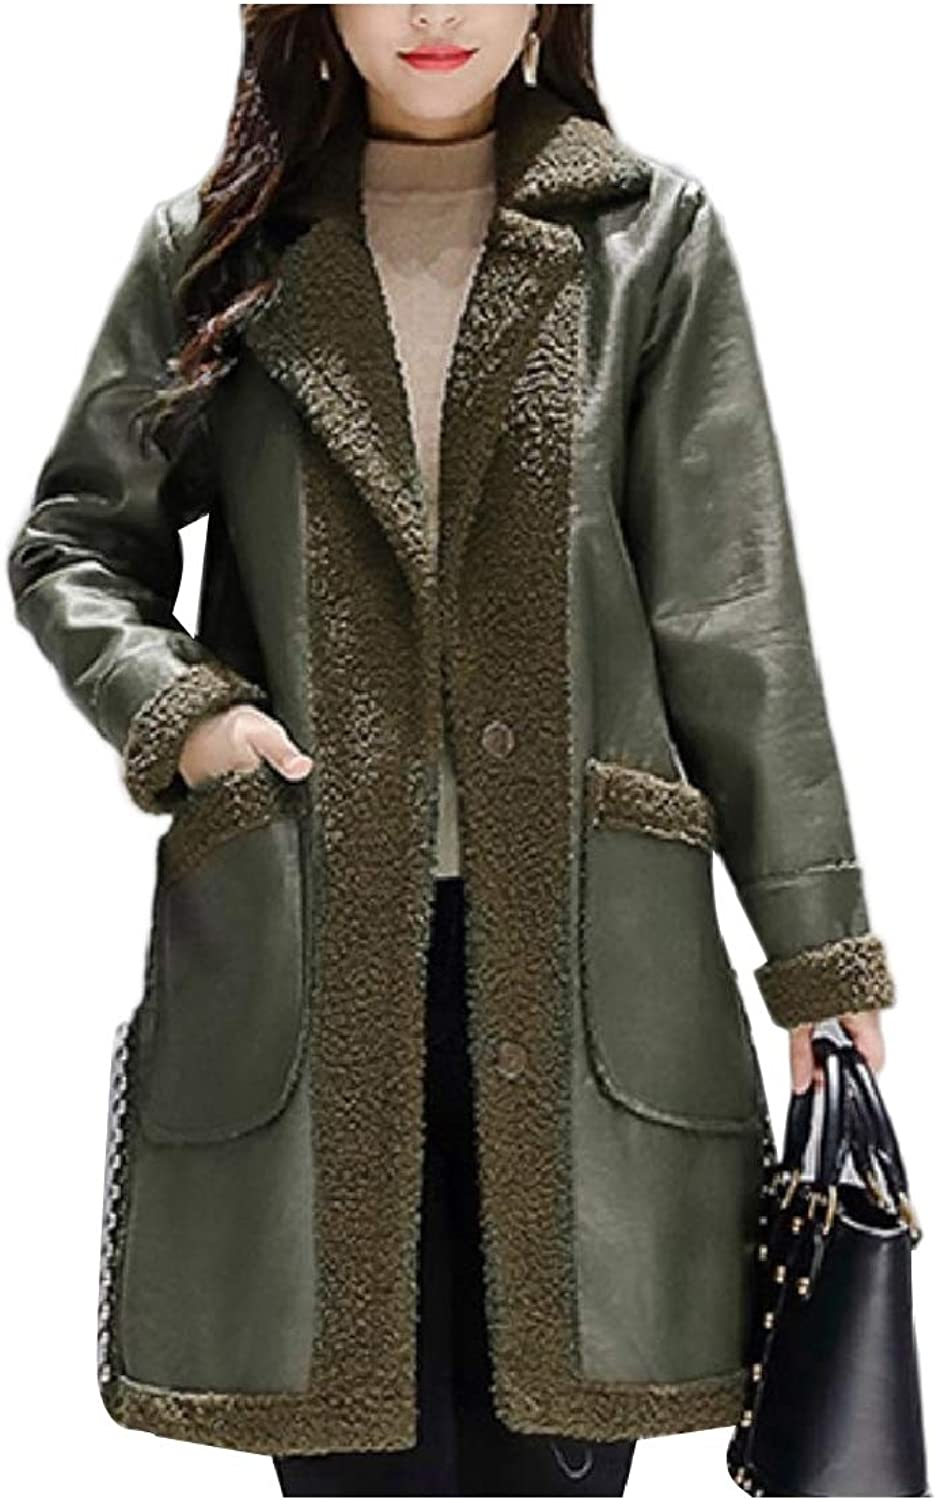 Cobama Womens Reversible Slim Fit Sherpa Relaxed Lapel Pu Leather Jacket